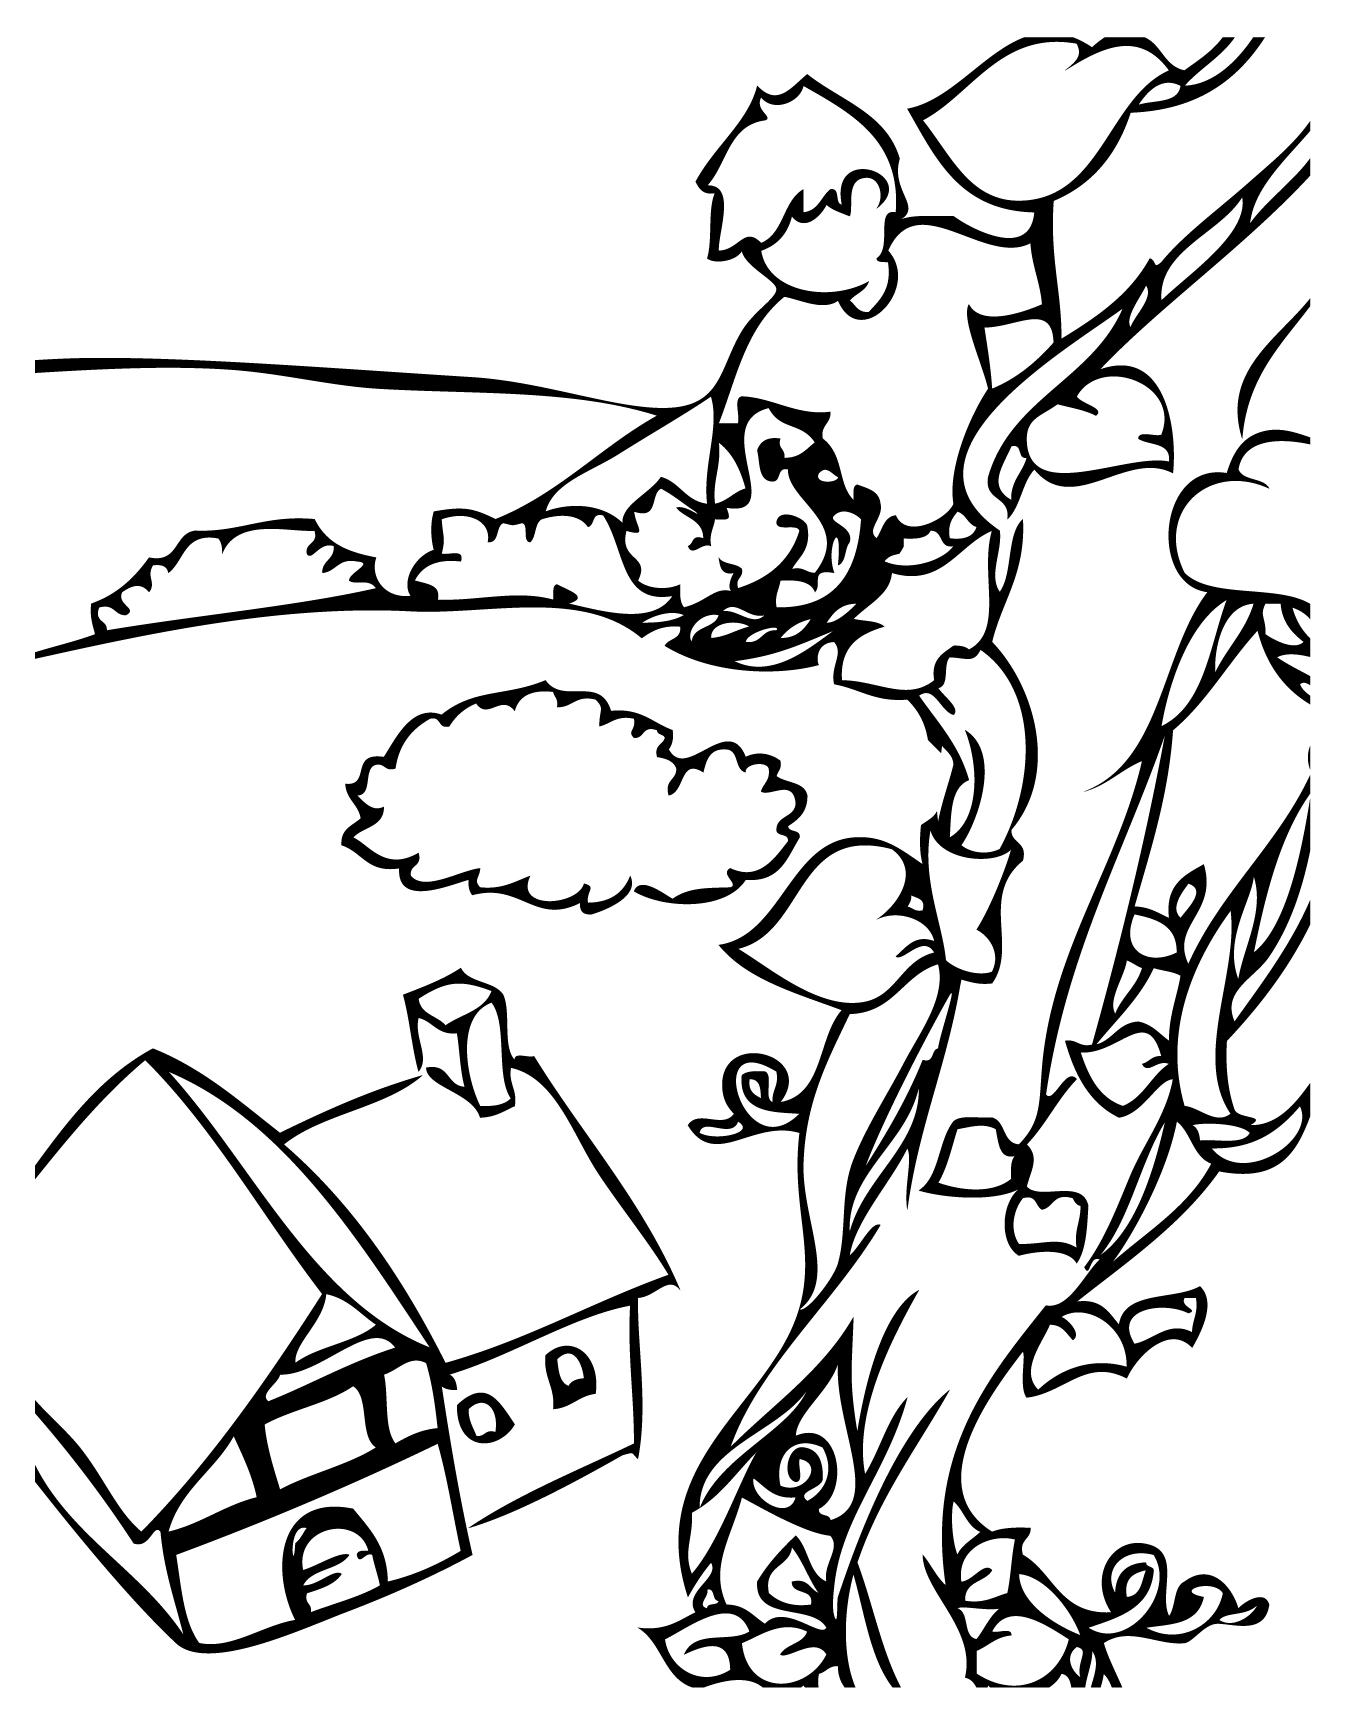 Jack And The Beanstalk Coloring Sheets